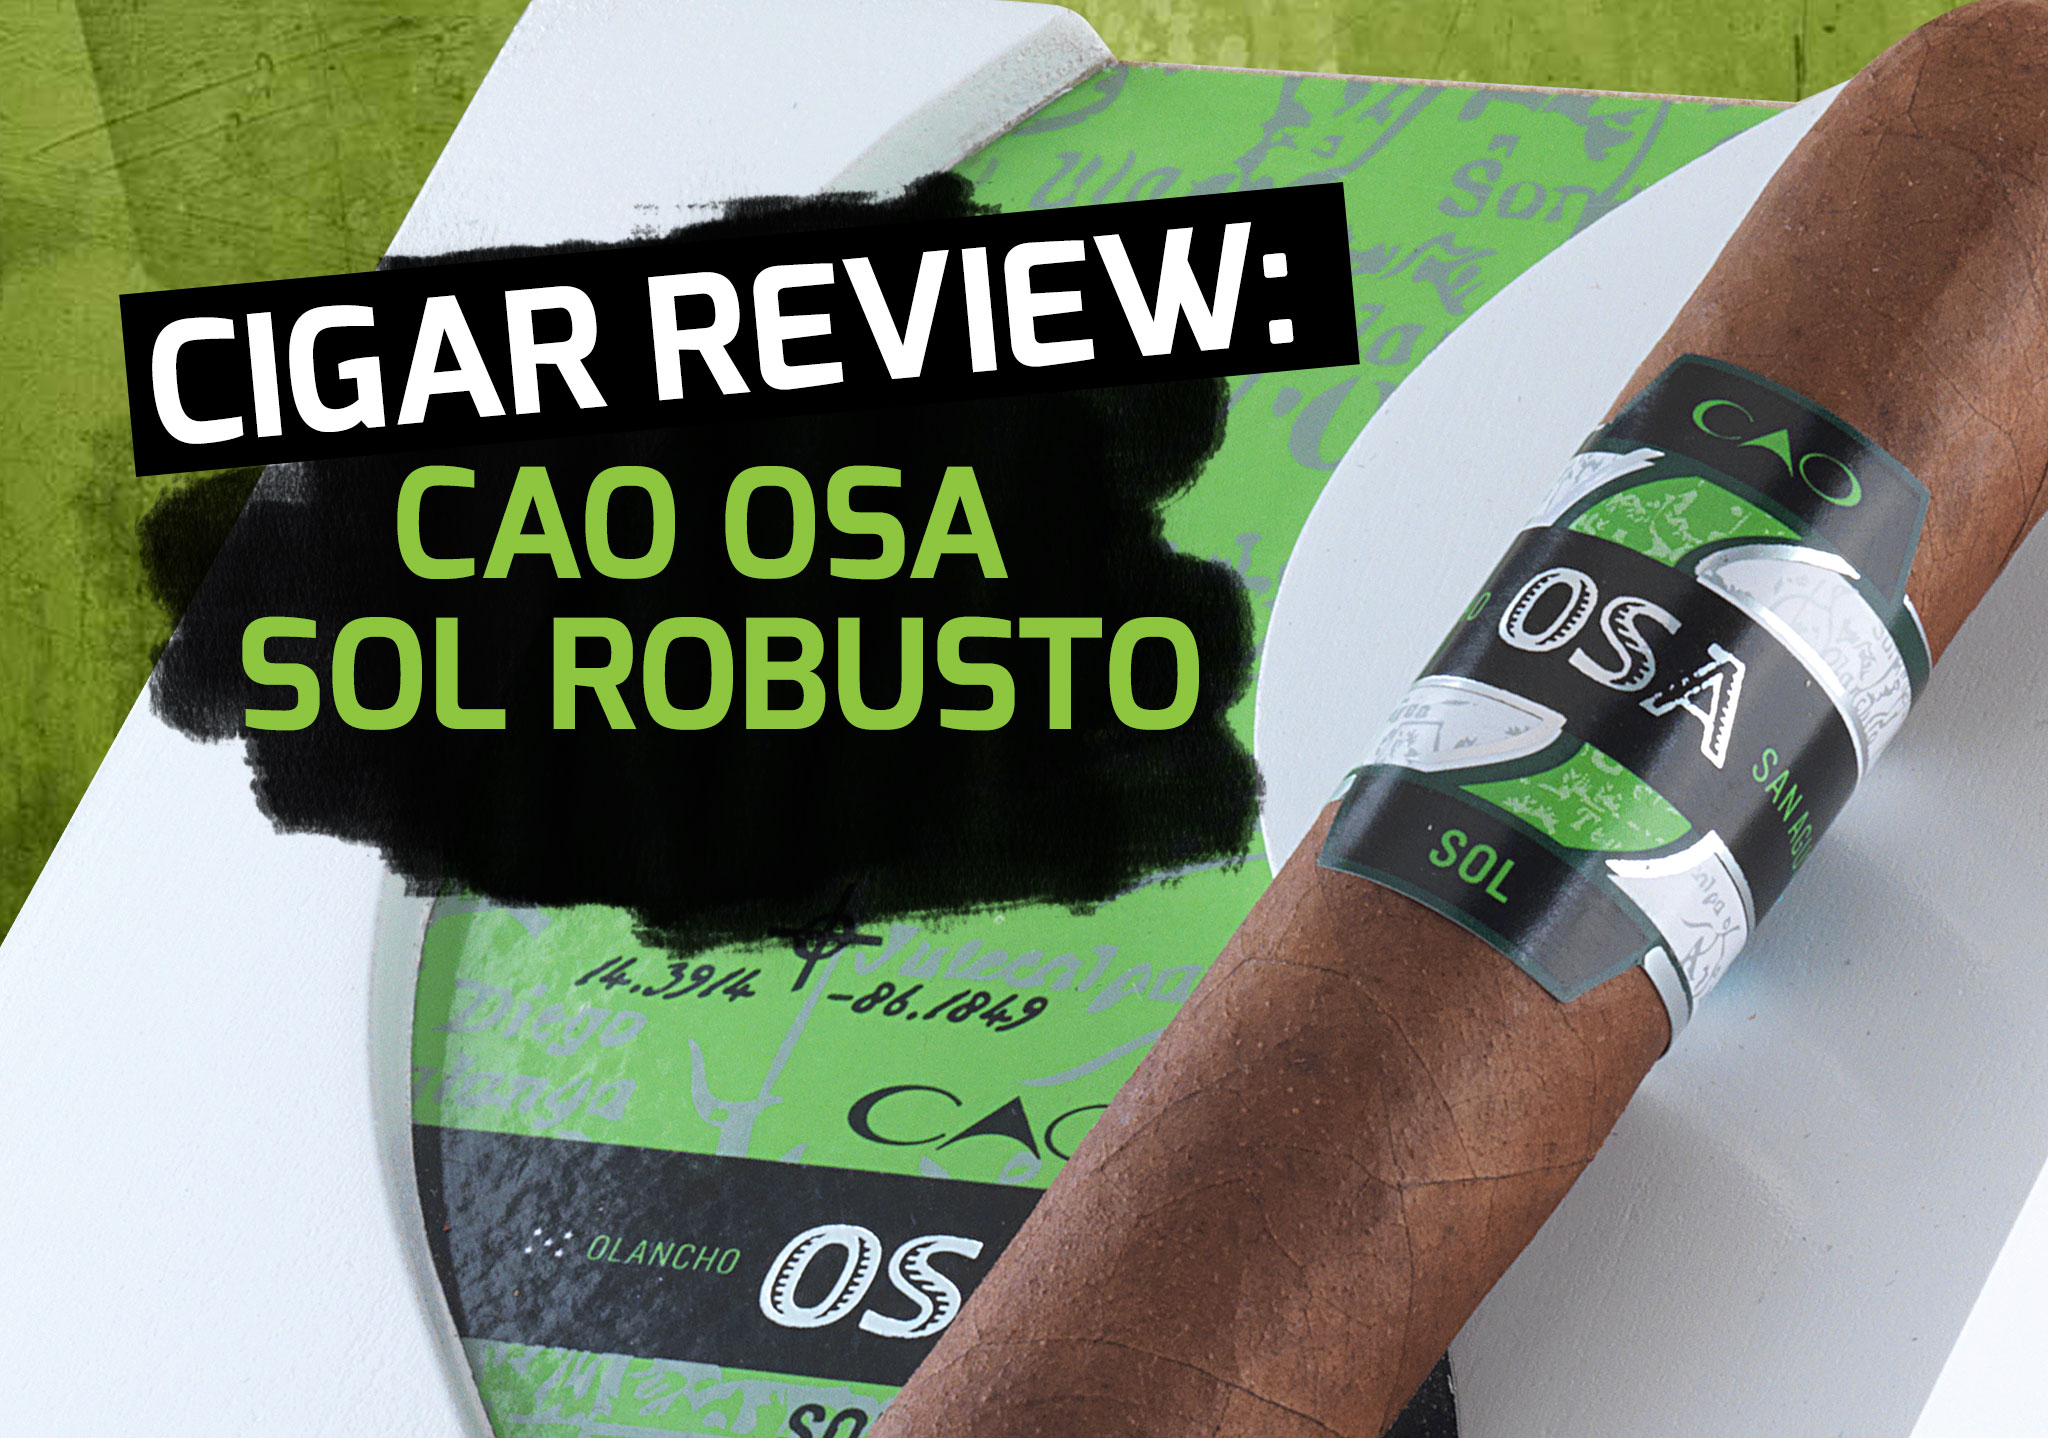 Cigar Review: CAO OSA Sol Robusto